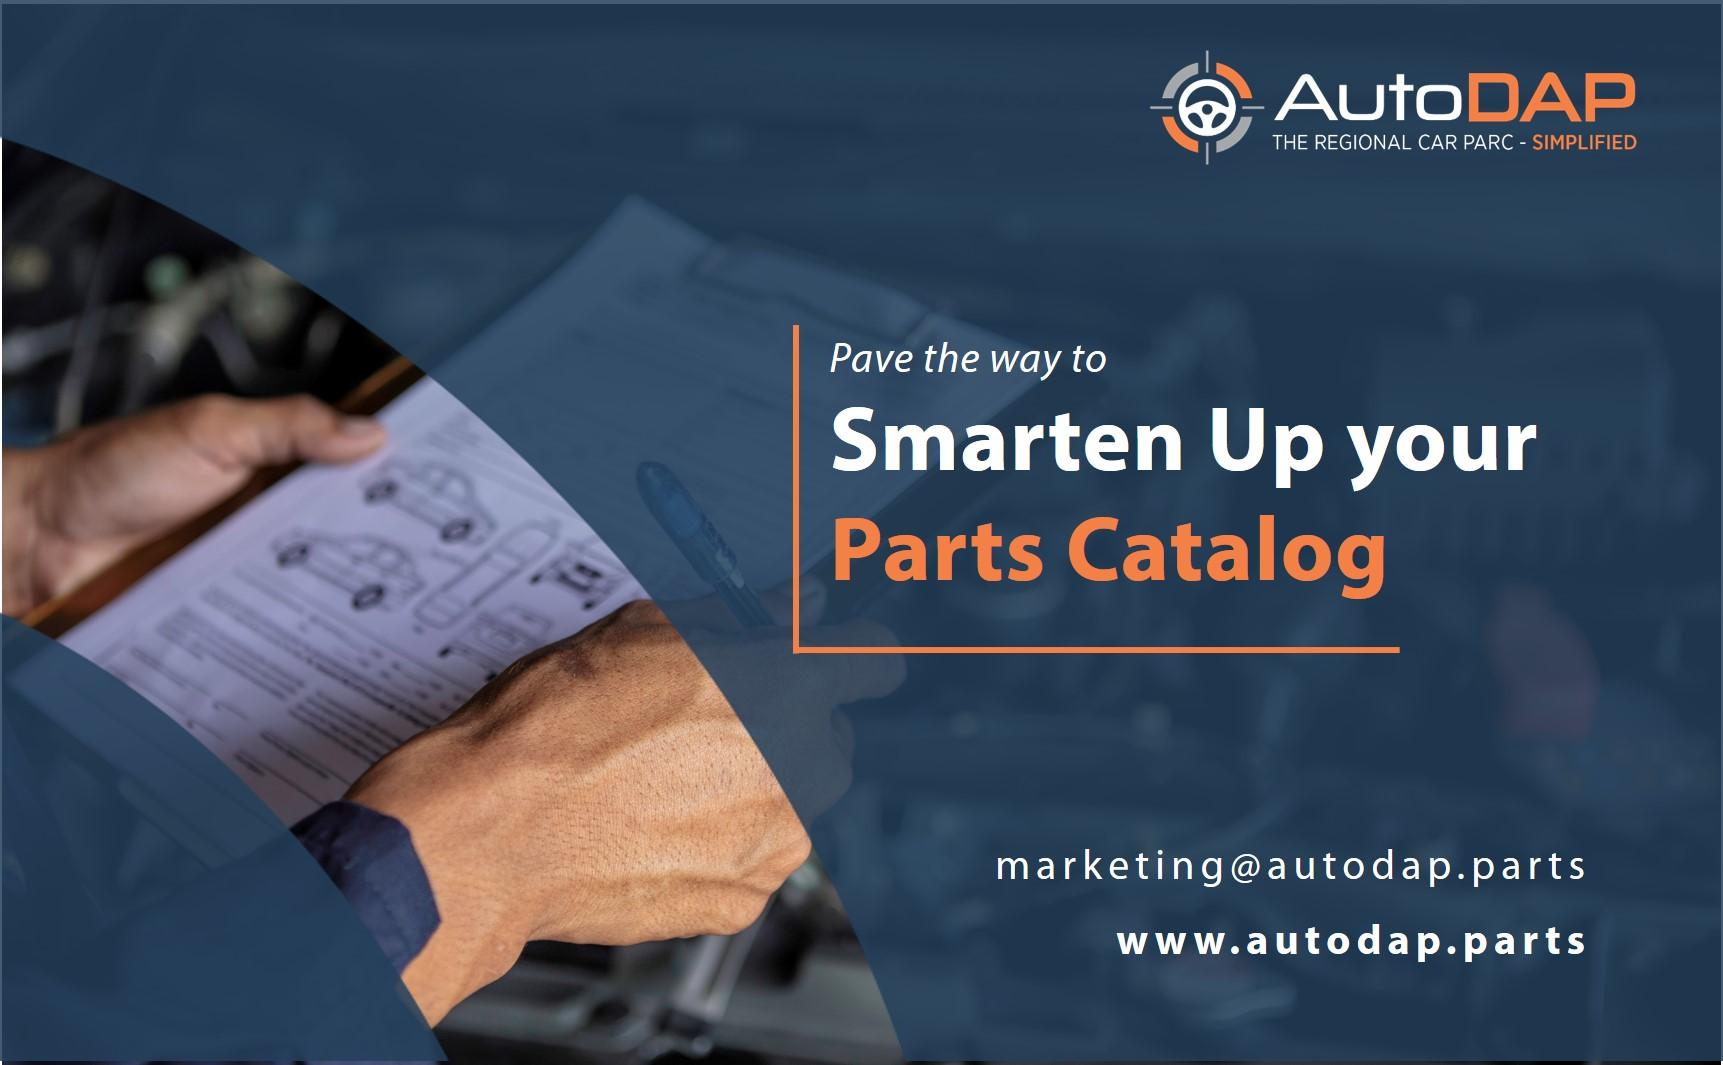 Pave The Way to Smarten up Your Parts Catalog